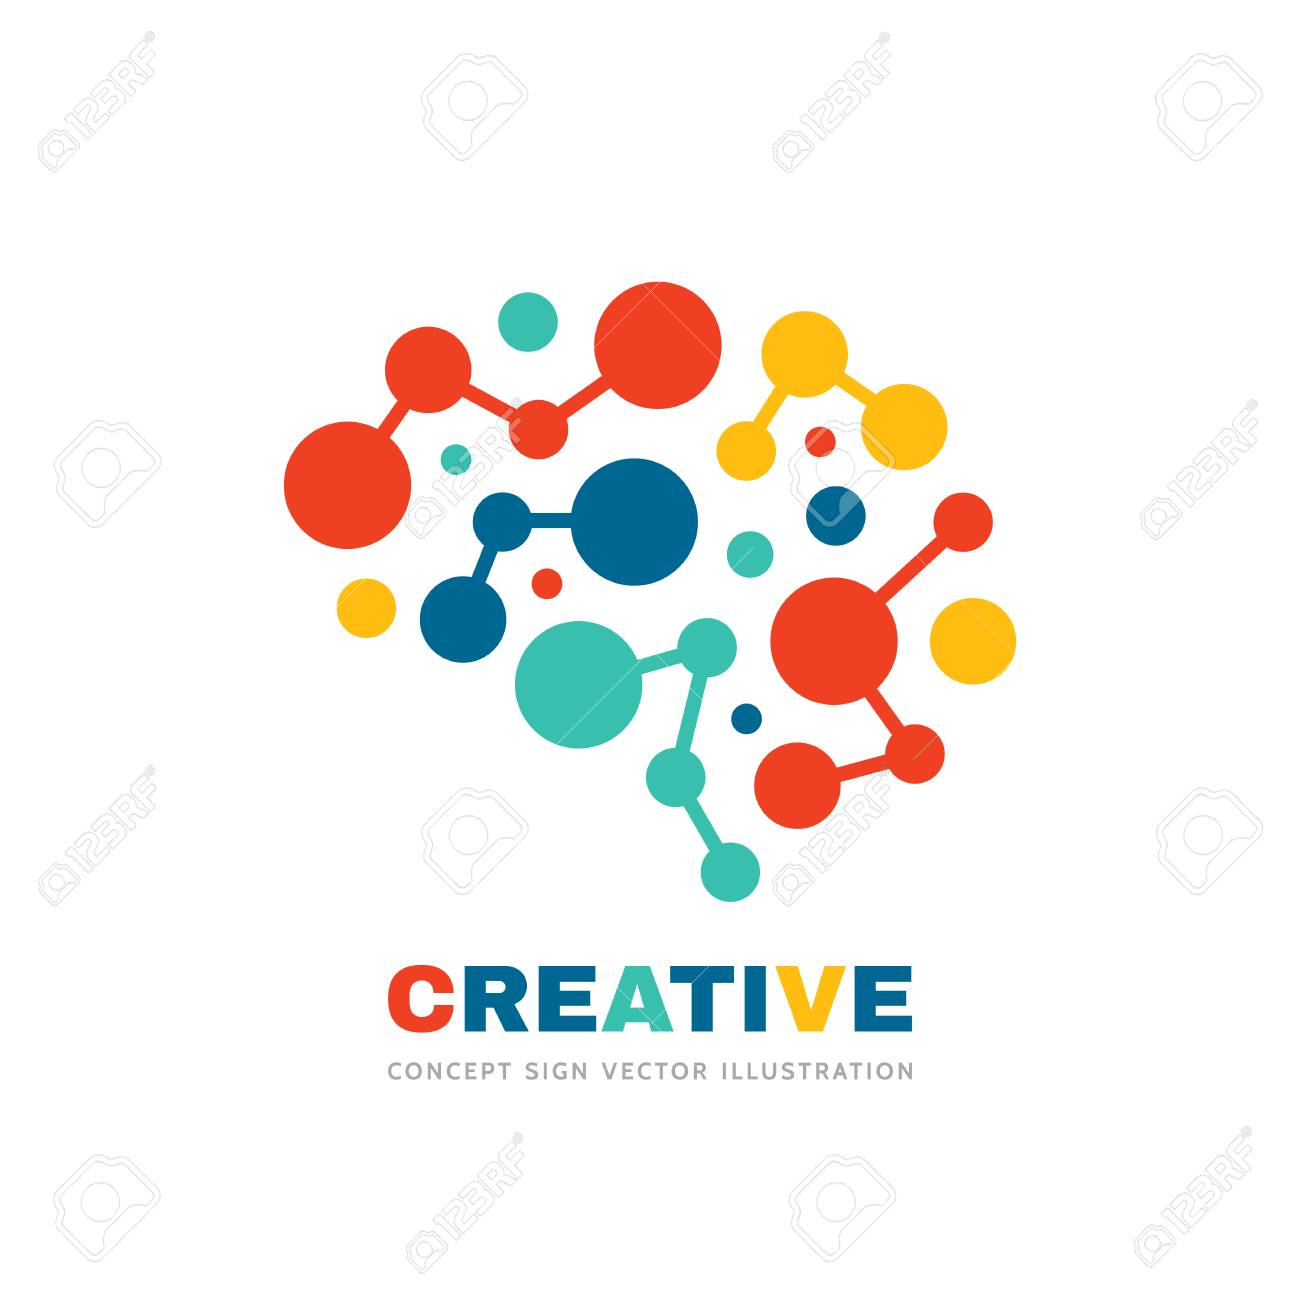 Creative idea - business vector logo template concept illustration. Abstract human brain sign. Geometric colored structure. Mind education symbol. Graphic design element. - 120552238